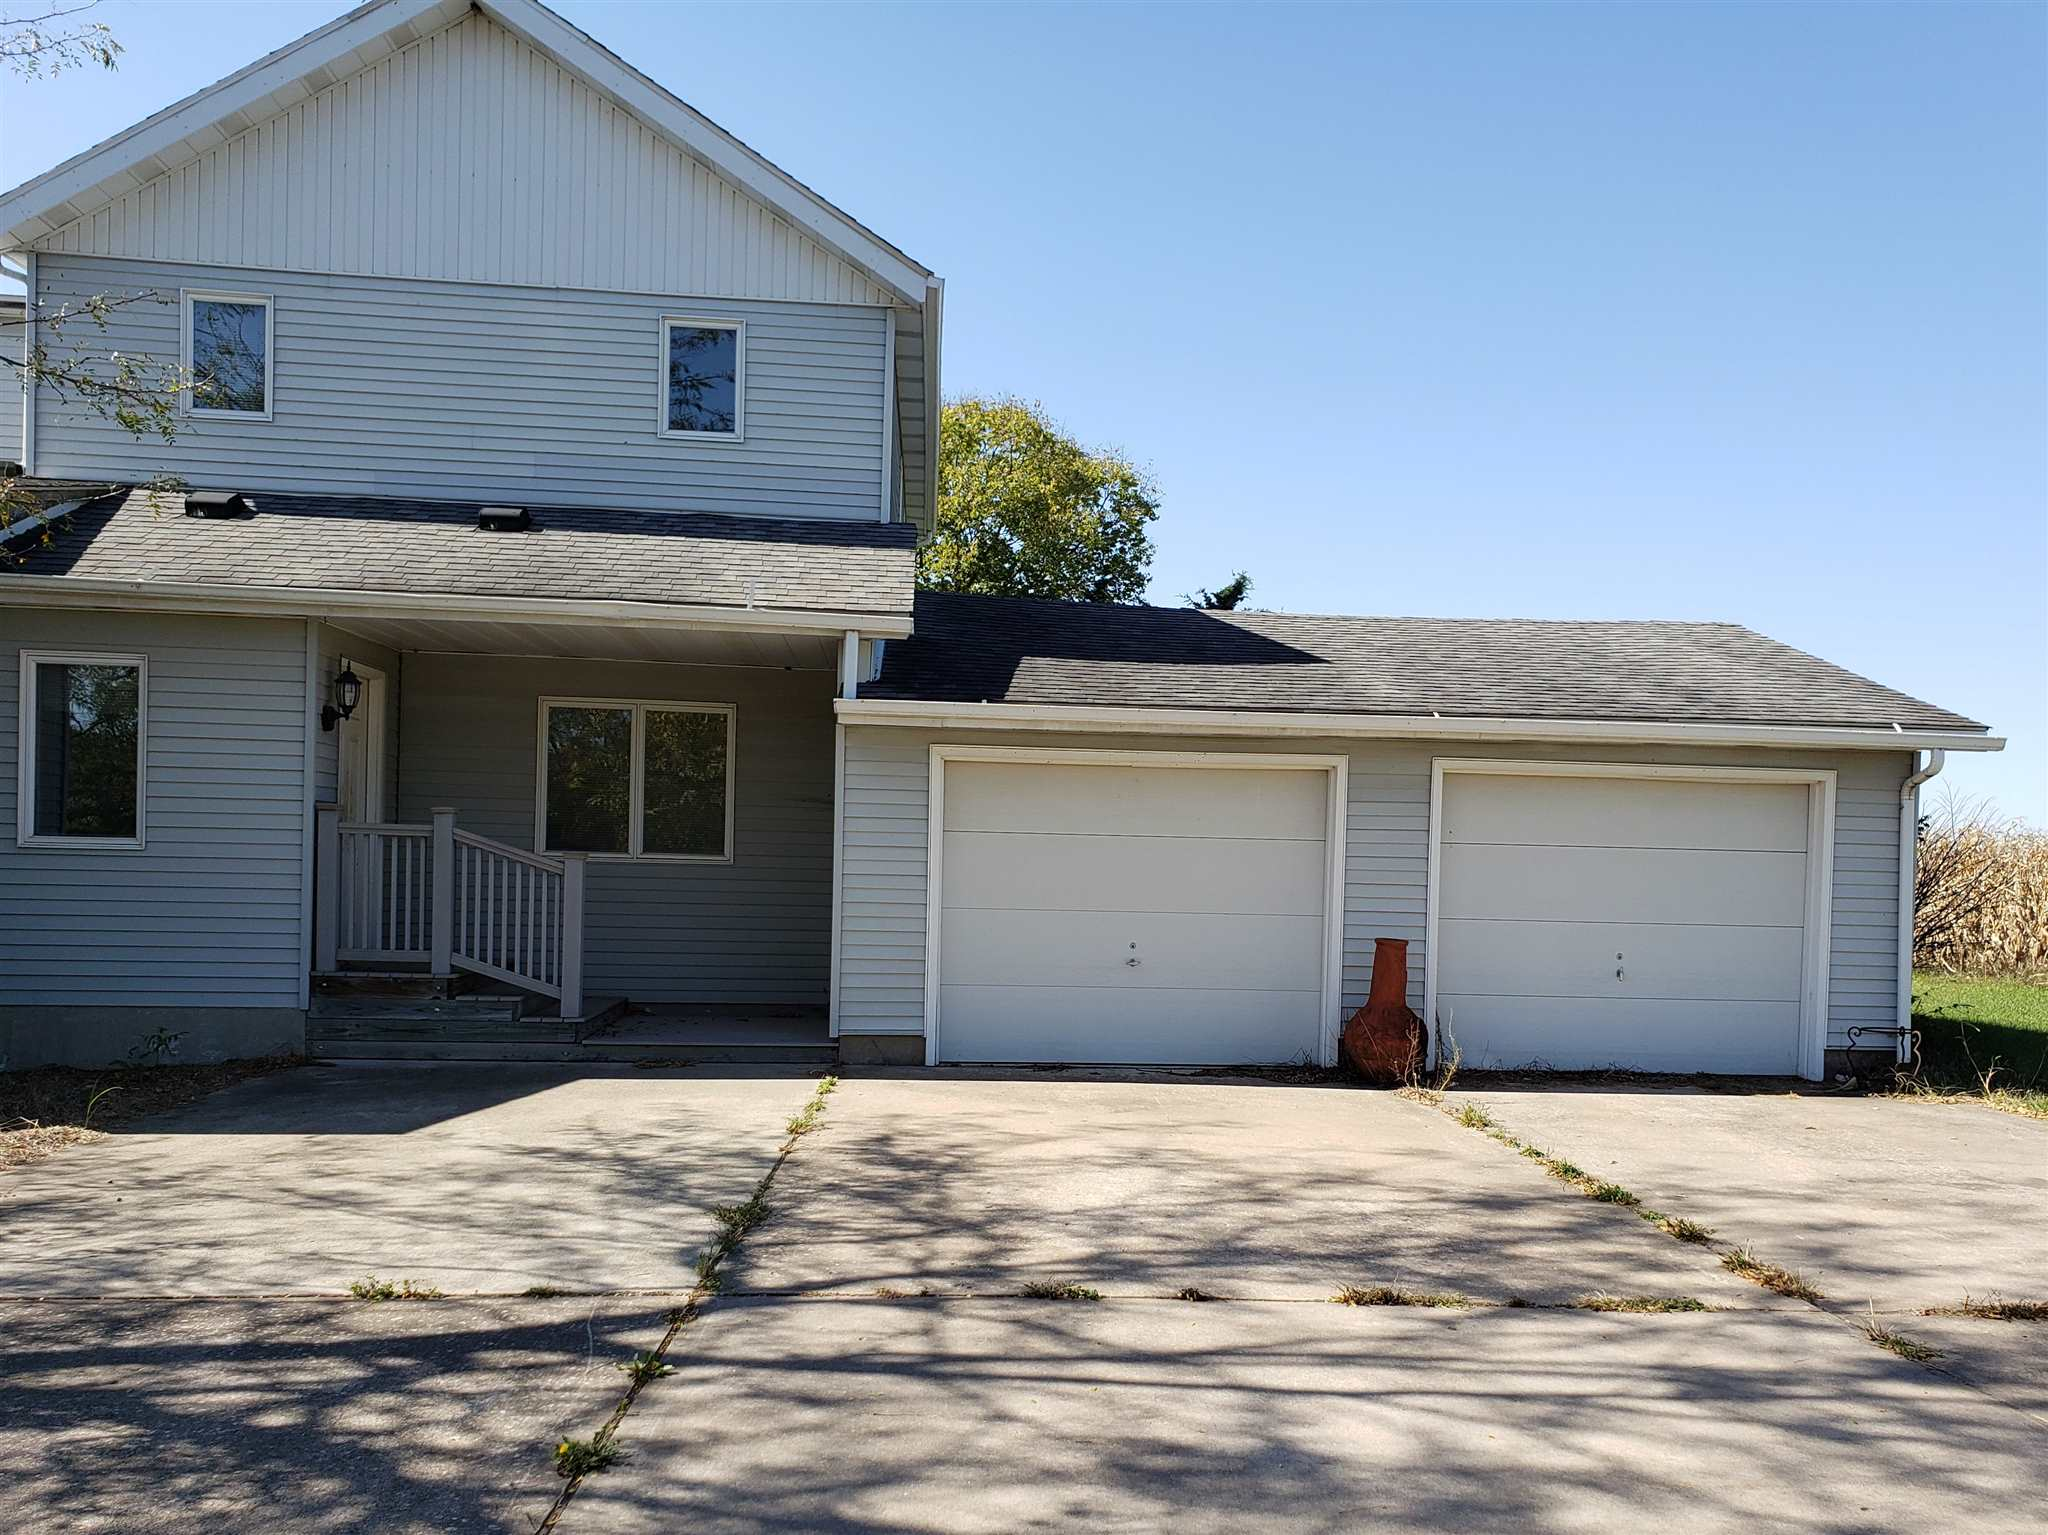 17809 CHASE Property Photo - Fulton, IL real estate listing